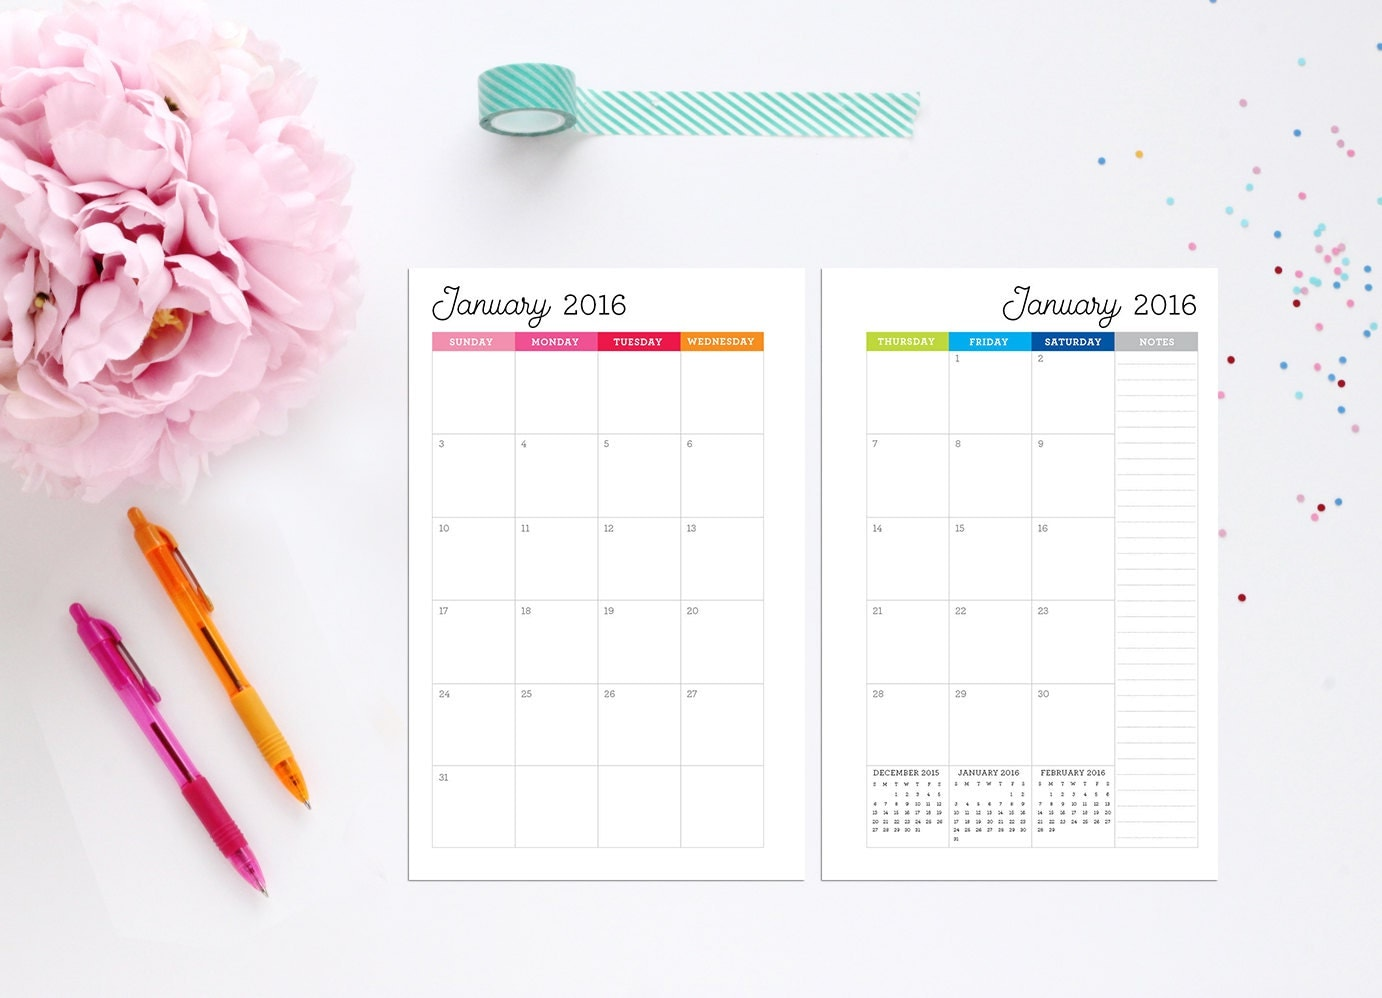 Monthly Calendar Half Page : Half page monthly calendar editable by design